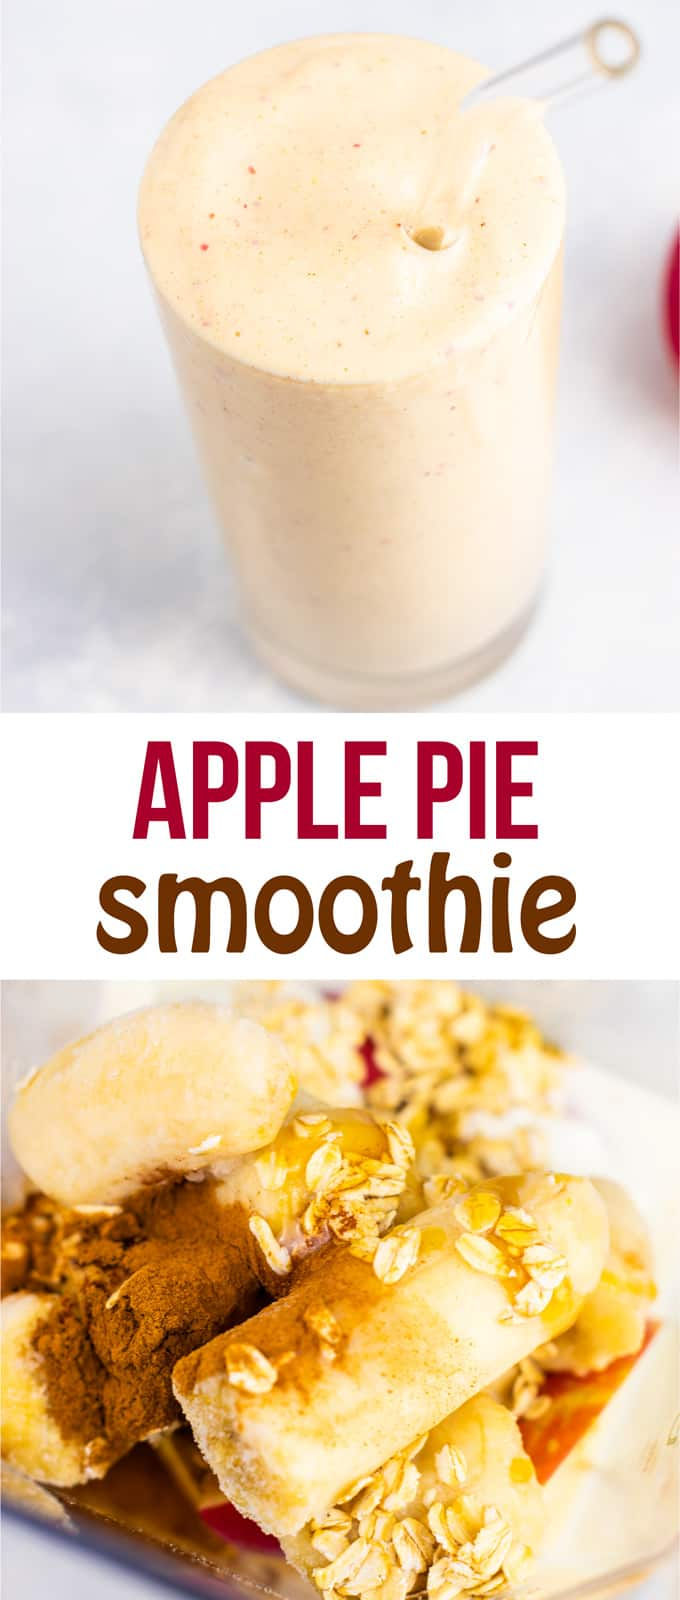 Apple pie smoothie recipe recipe (gluten free) Tastes like fall in a glass! So healthy and yummy! #glutenfree #applepiesmoothie #smoothie #fallrecipes